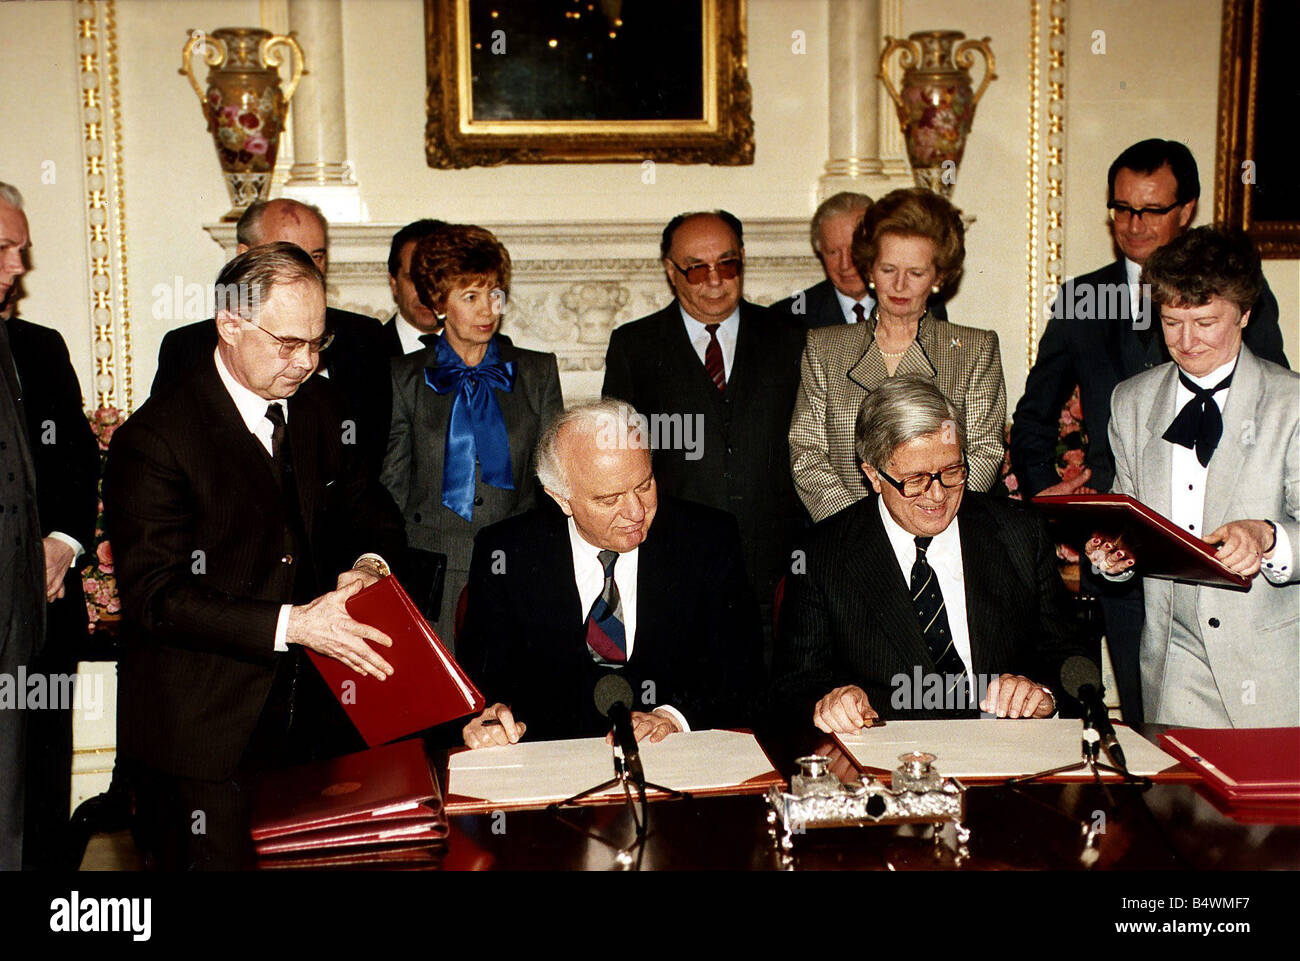 Soviet leader Mikail Gorbachev British Prime Minister Thatcher Eduard Sheverdnadze and Sir Geoffrey Howe at a signing - Stock Image